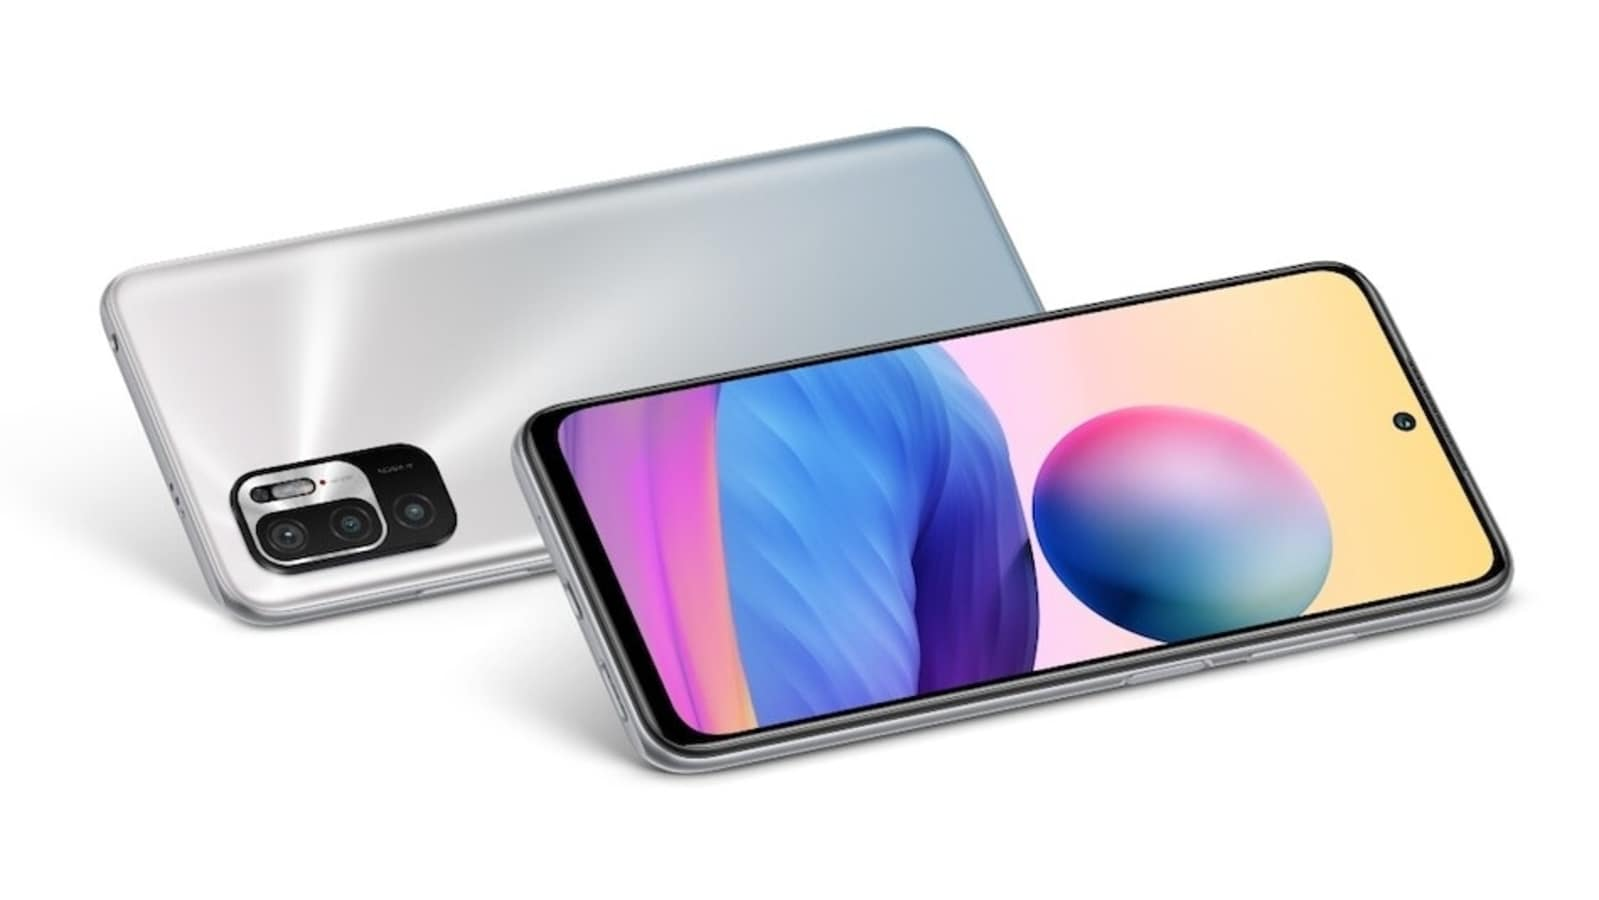 Redmi Note 10T 5G launched in India with MediaTek Dimensity 700 SoC: Price, Specifications